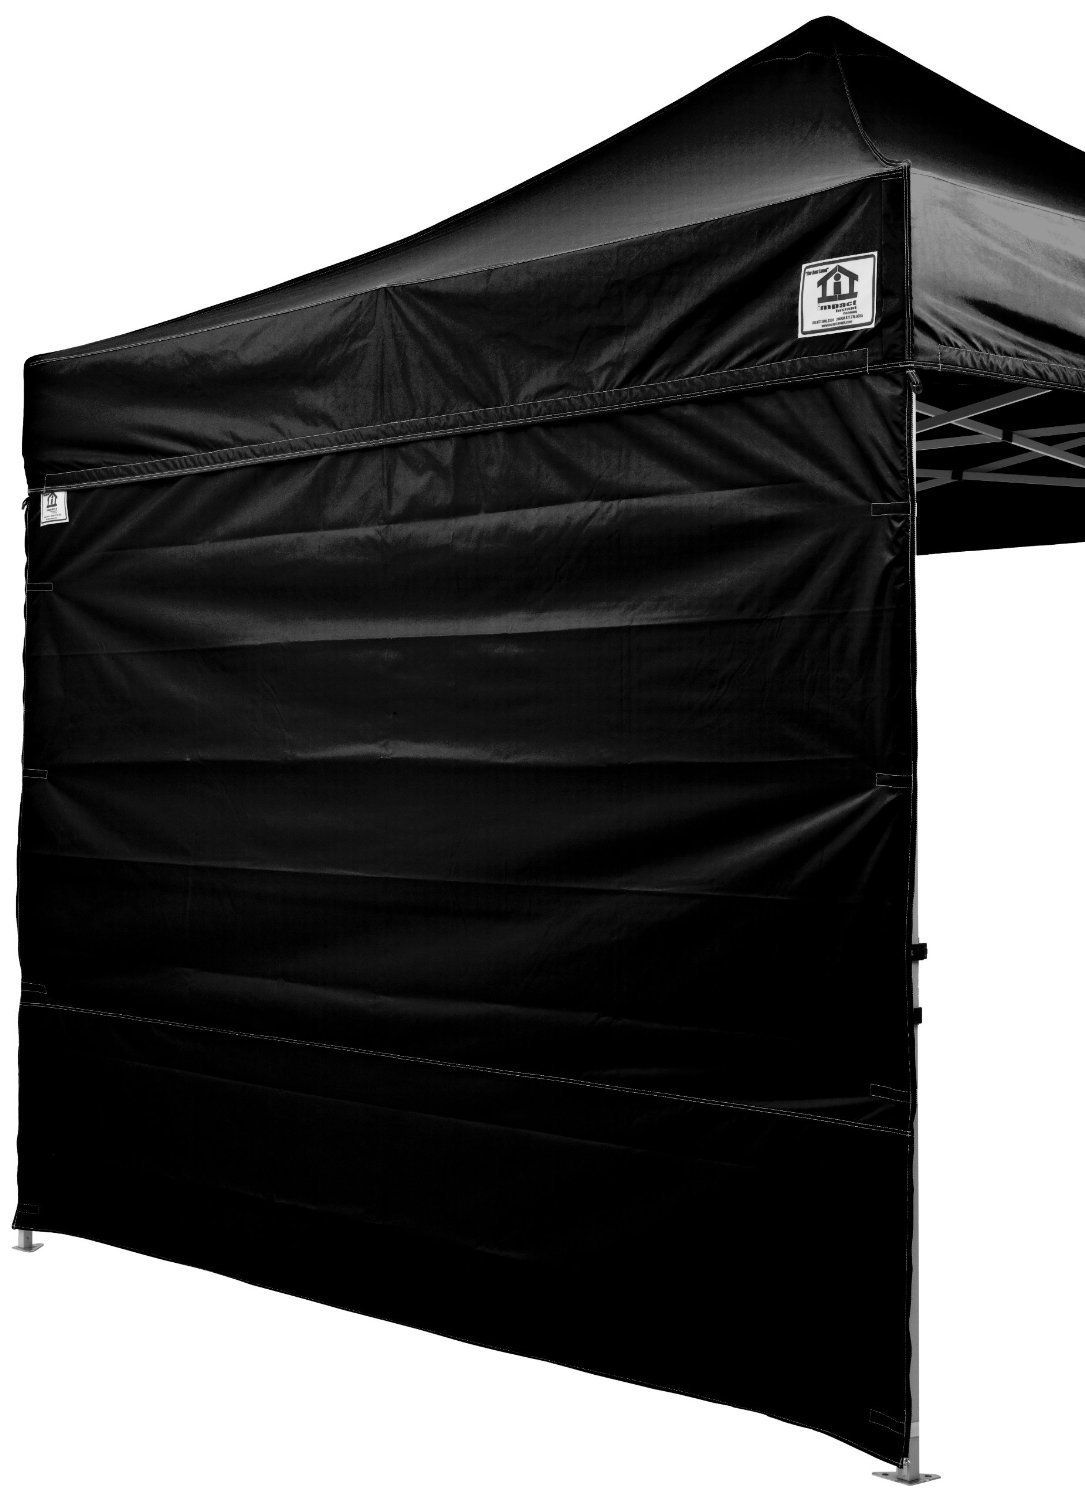 Impact Canopy 10x10 Canopy Tent Solid Sidewalls White Screen Room Sidewalls Combo Pack Black Startli Canopy Tent Canopy Tent Outdoor Pop Up Canopy Tent